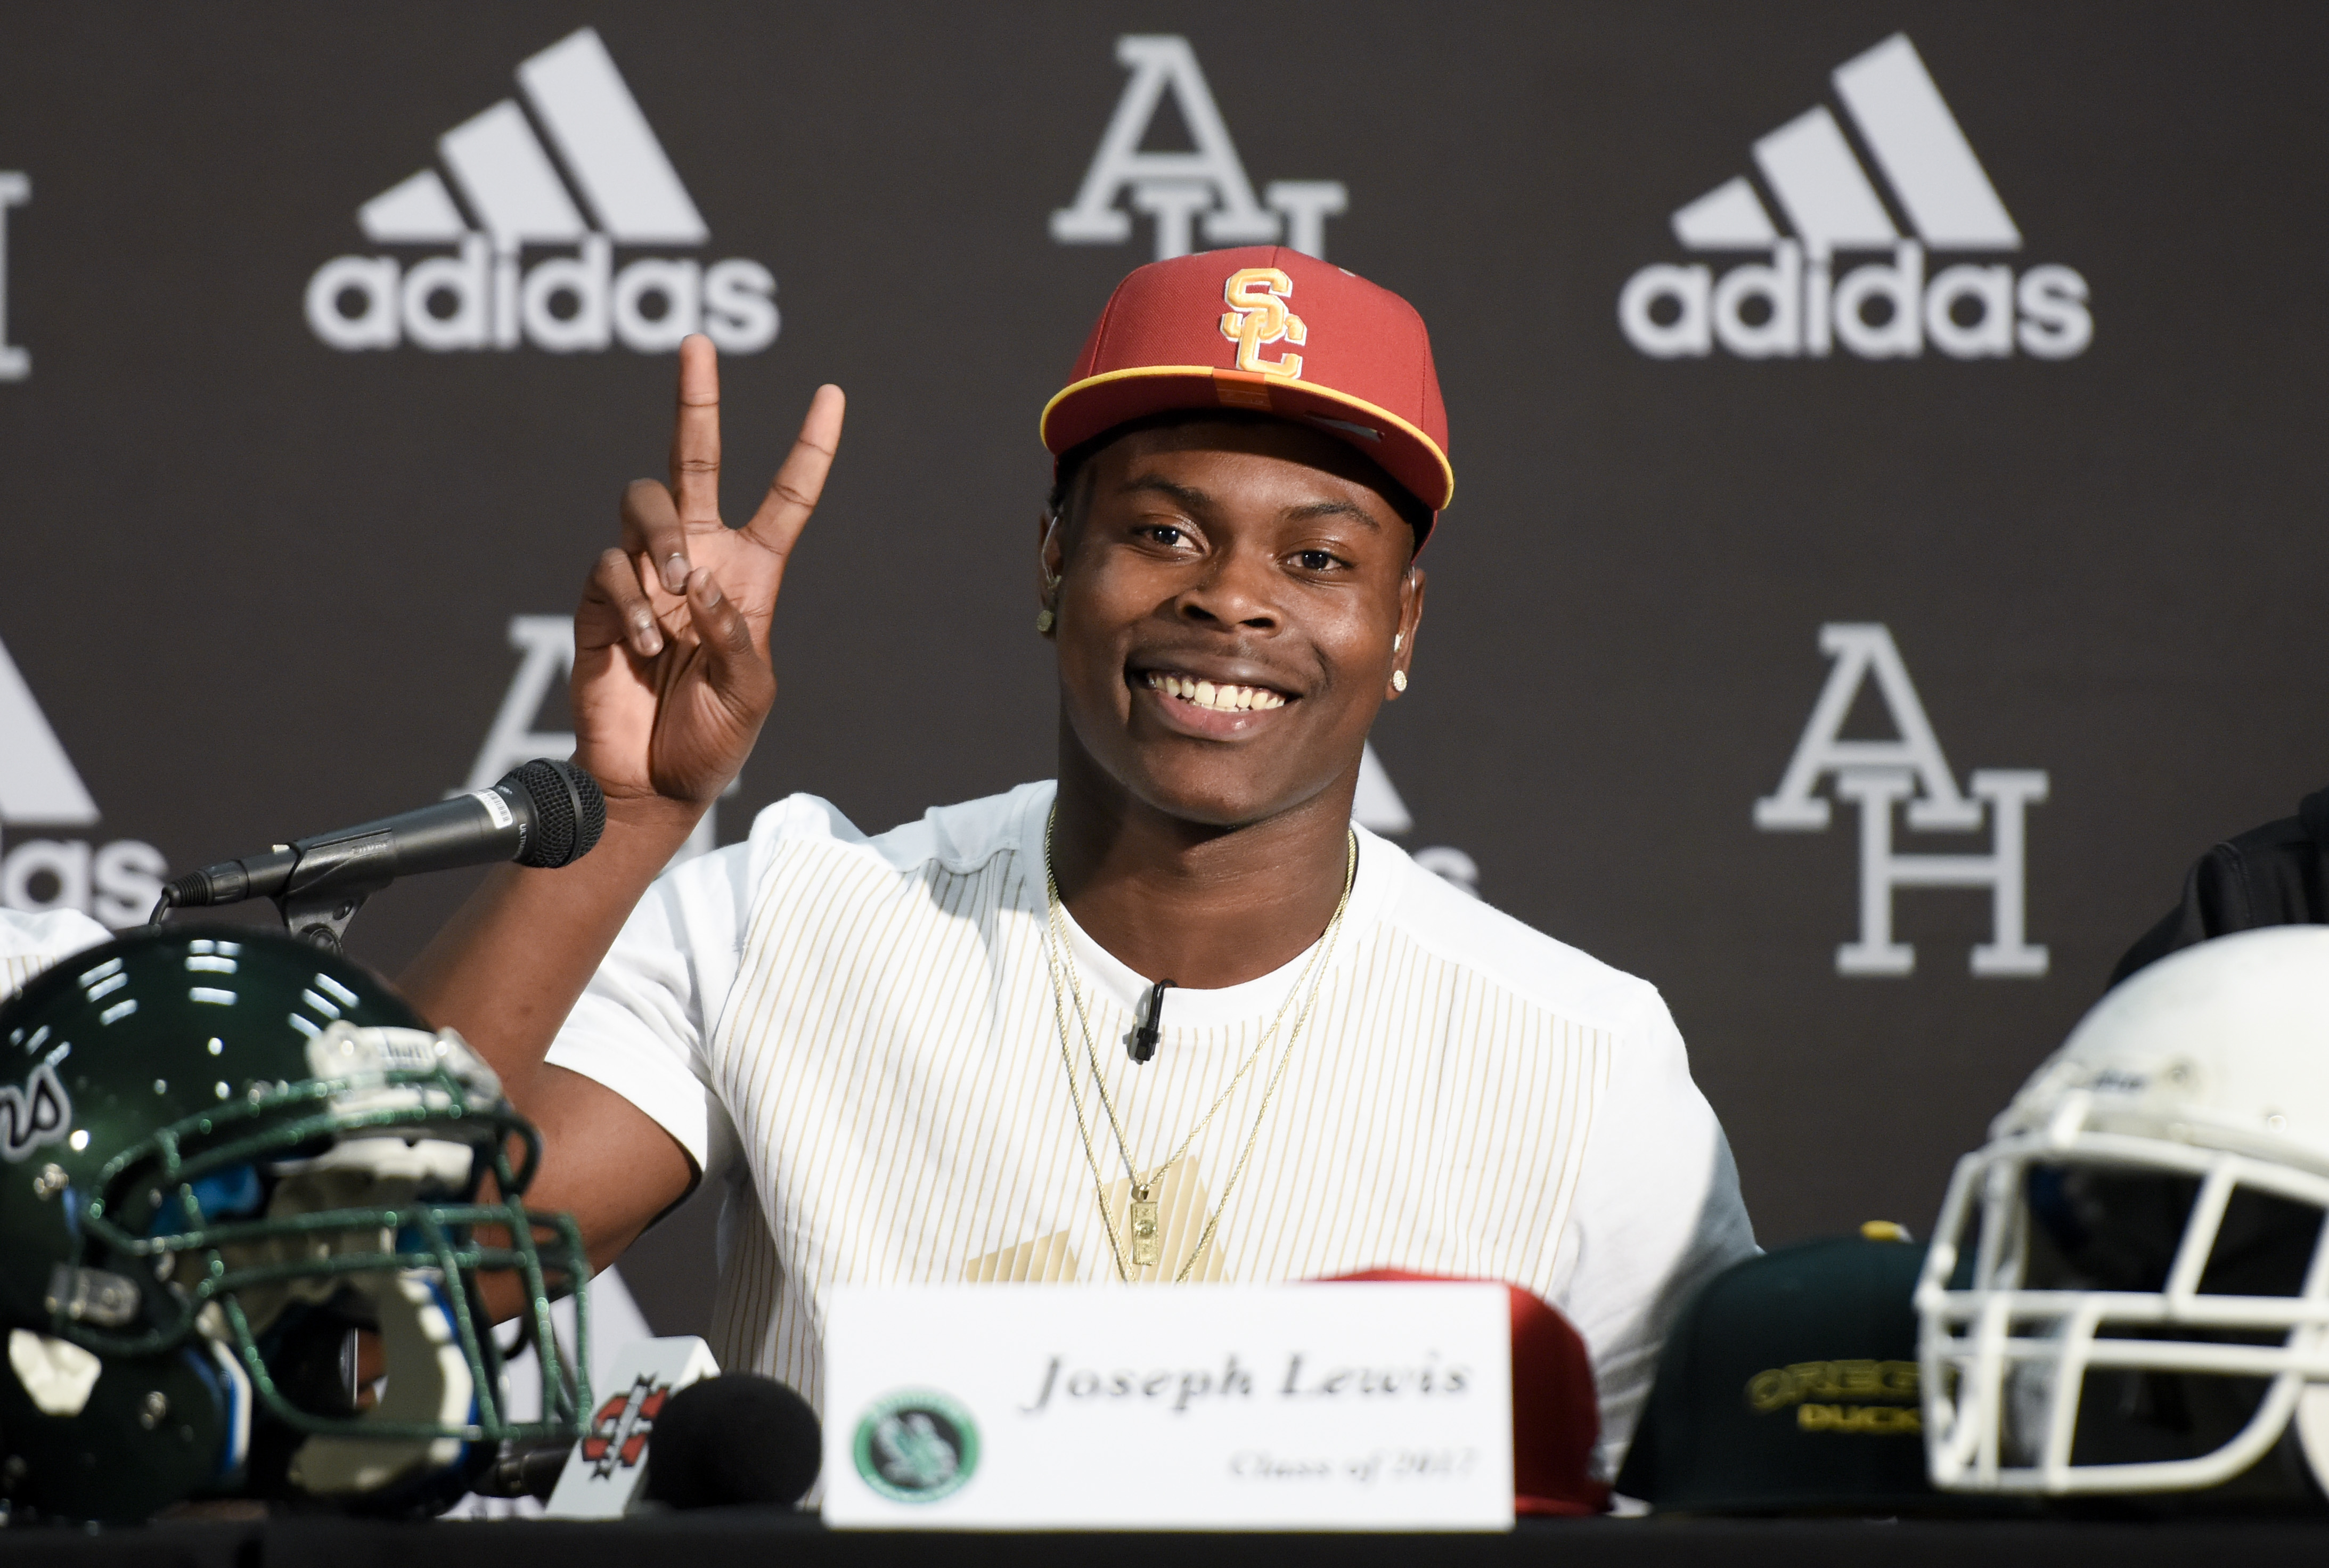 Feb 1, 2017; Los Angeles, CA, USA; Joseph Lewis announces that he will sign with USC at Augustus Hawkins High School. Mandatory Credit: Kelvin Kuo-USA TODAY Sports